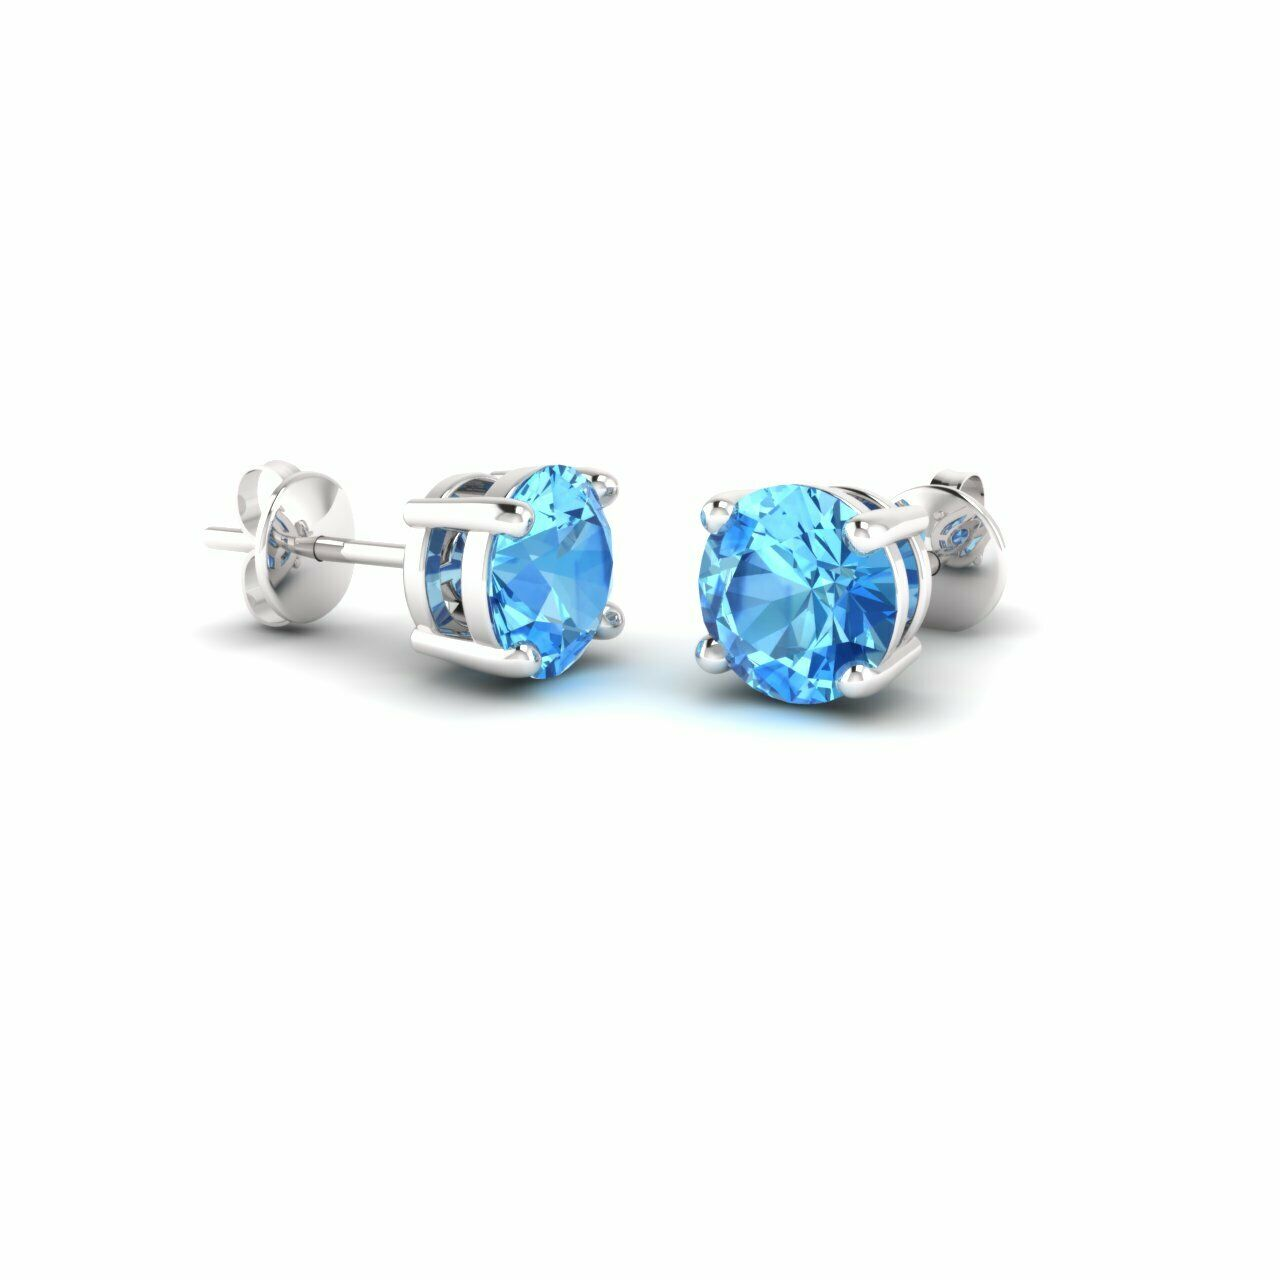 CERTIFIED 14K WHITE gold 0.96 CARAT blueE TOPAZ ROUND SOLITAIRE STUD EARRING